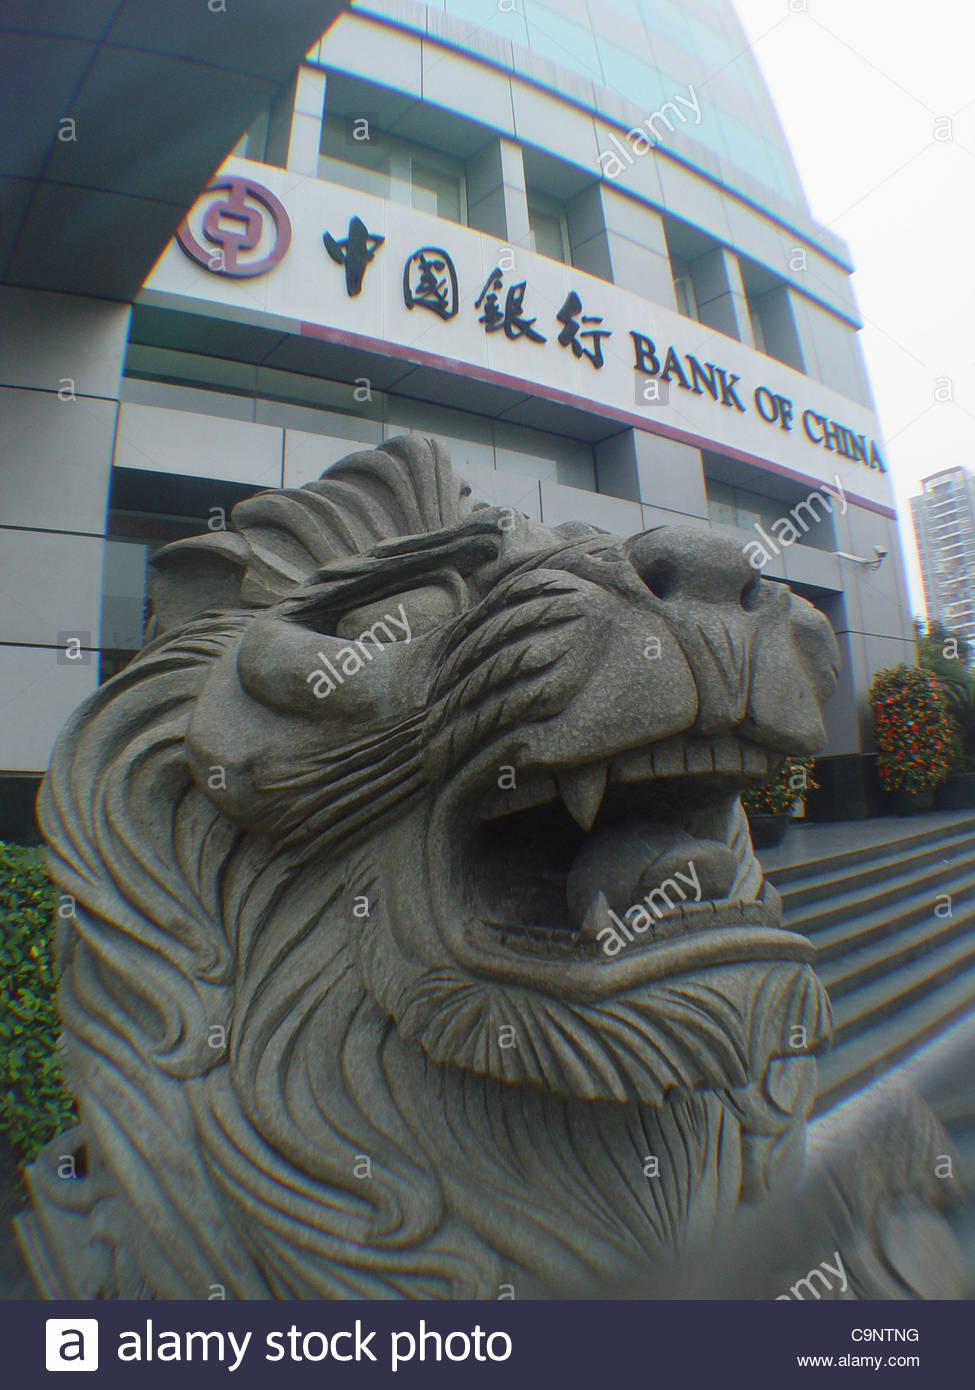 According to the publish data from China banking regulatory commission, the total property of banking financial - Stock Image